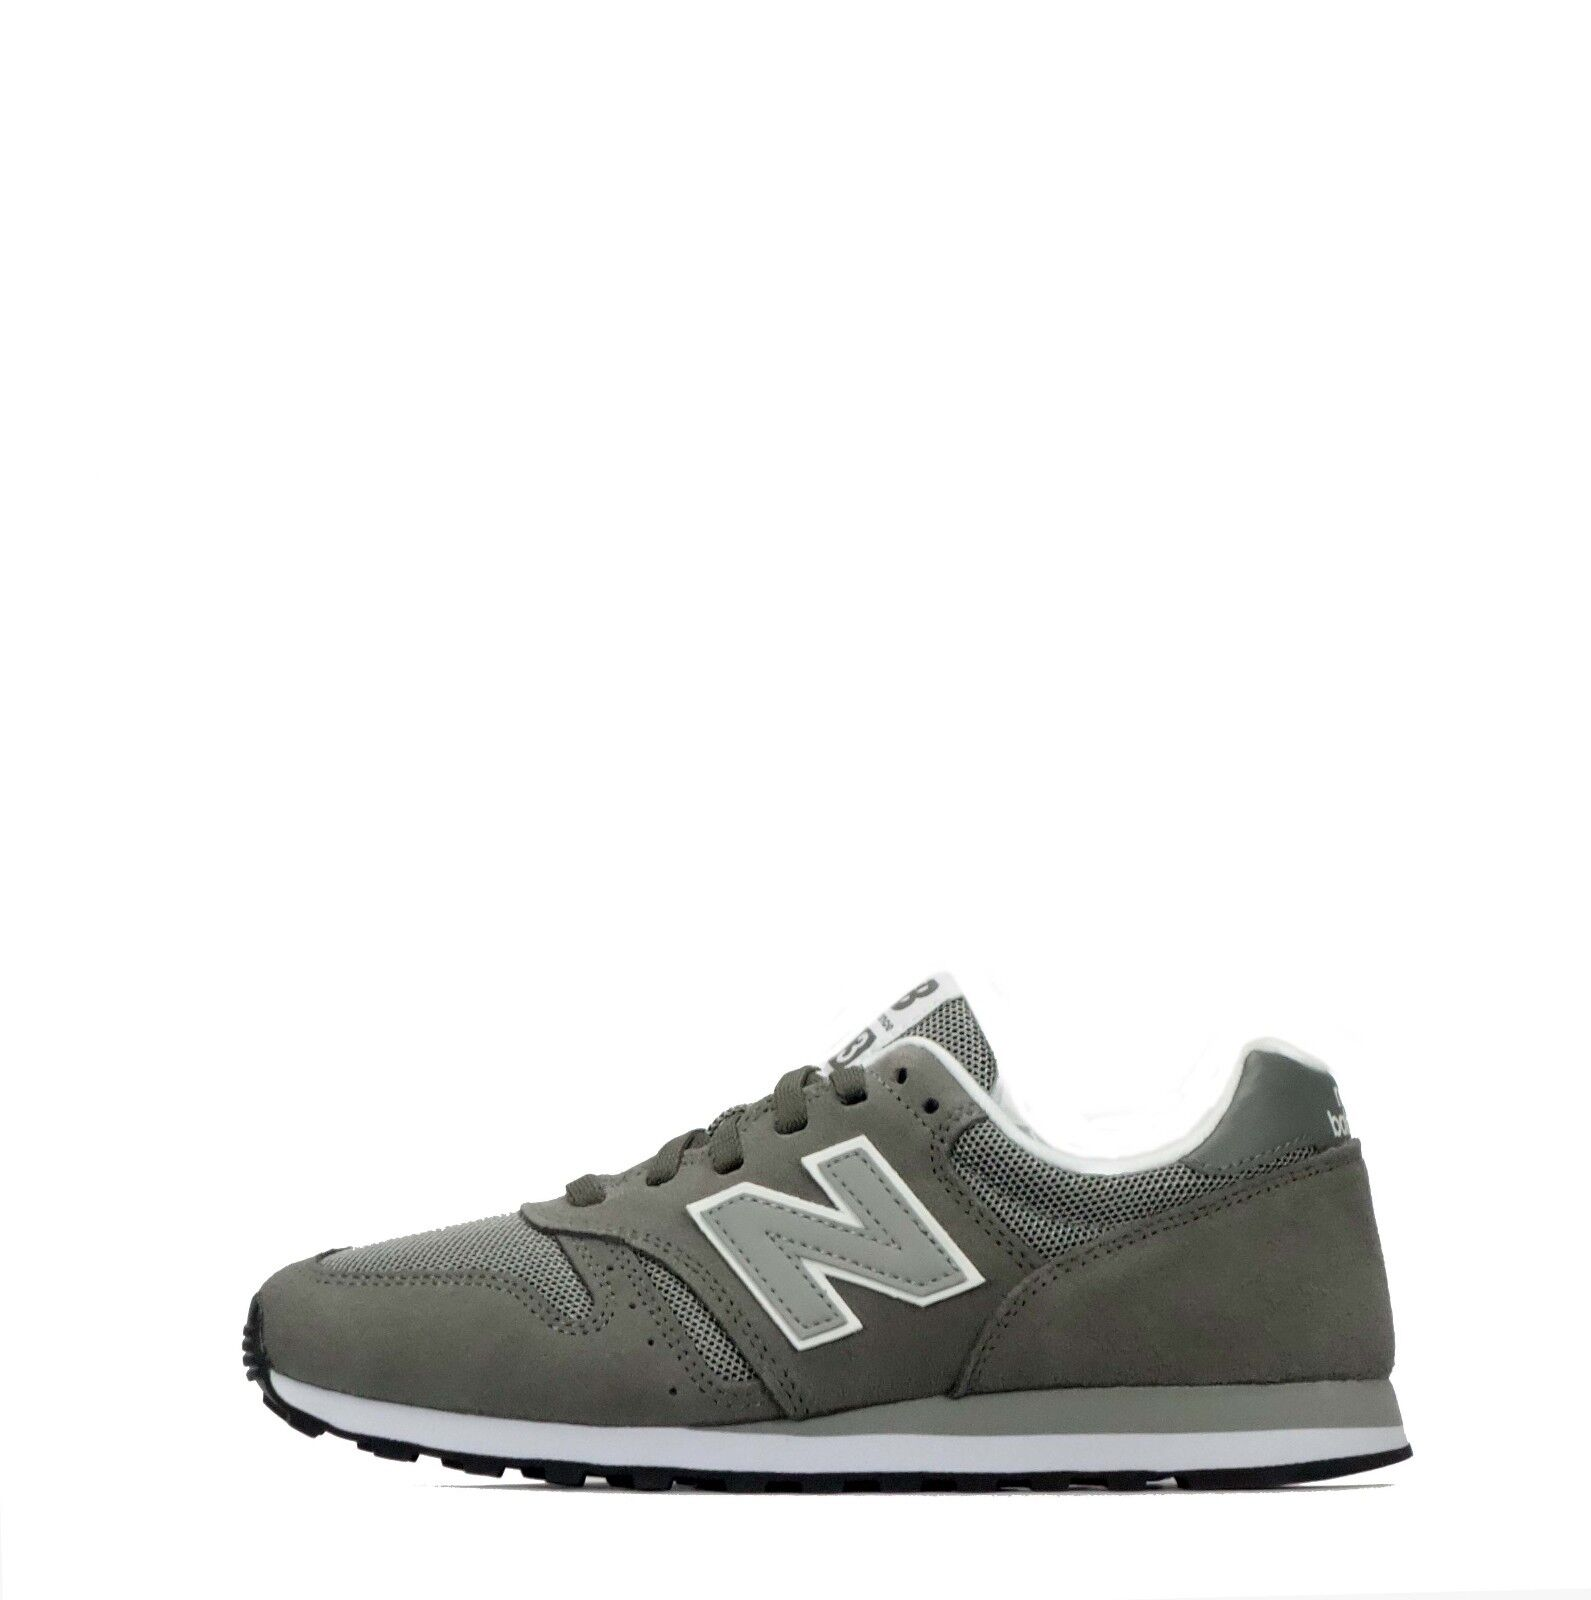 New Balance 373 Men's shoes Grey White